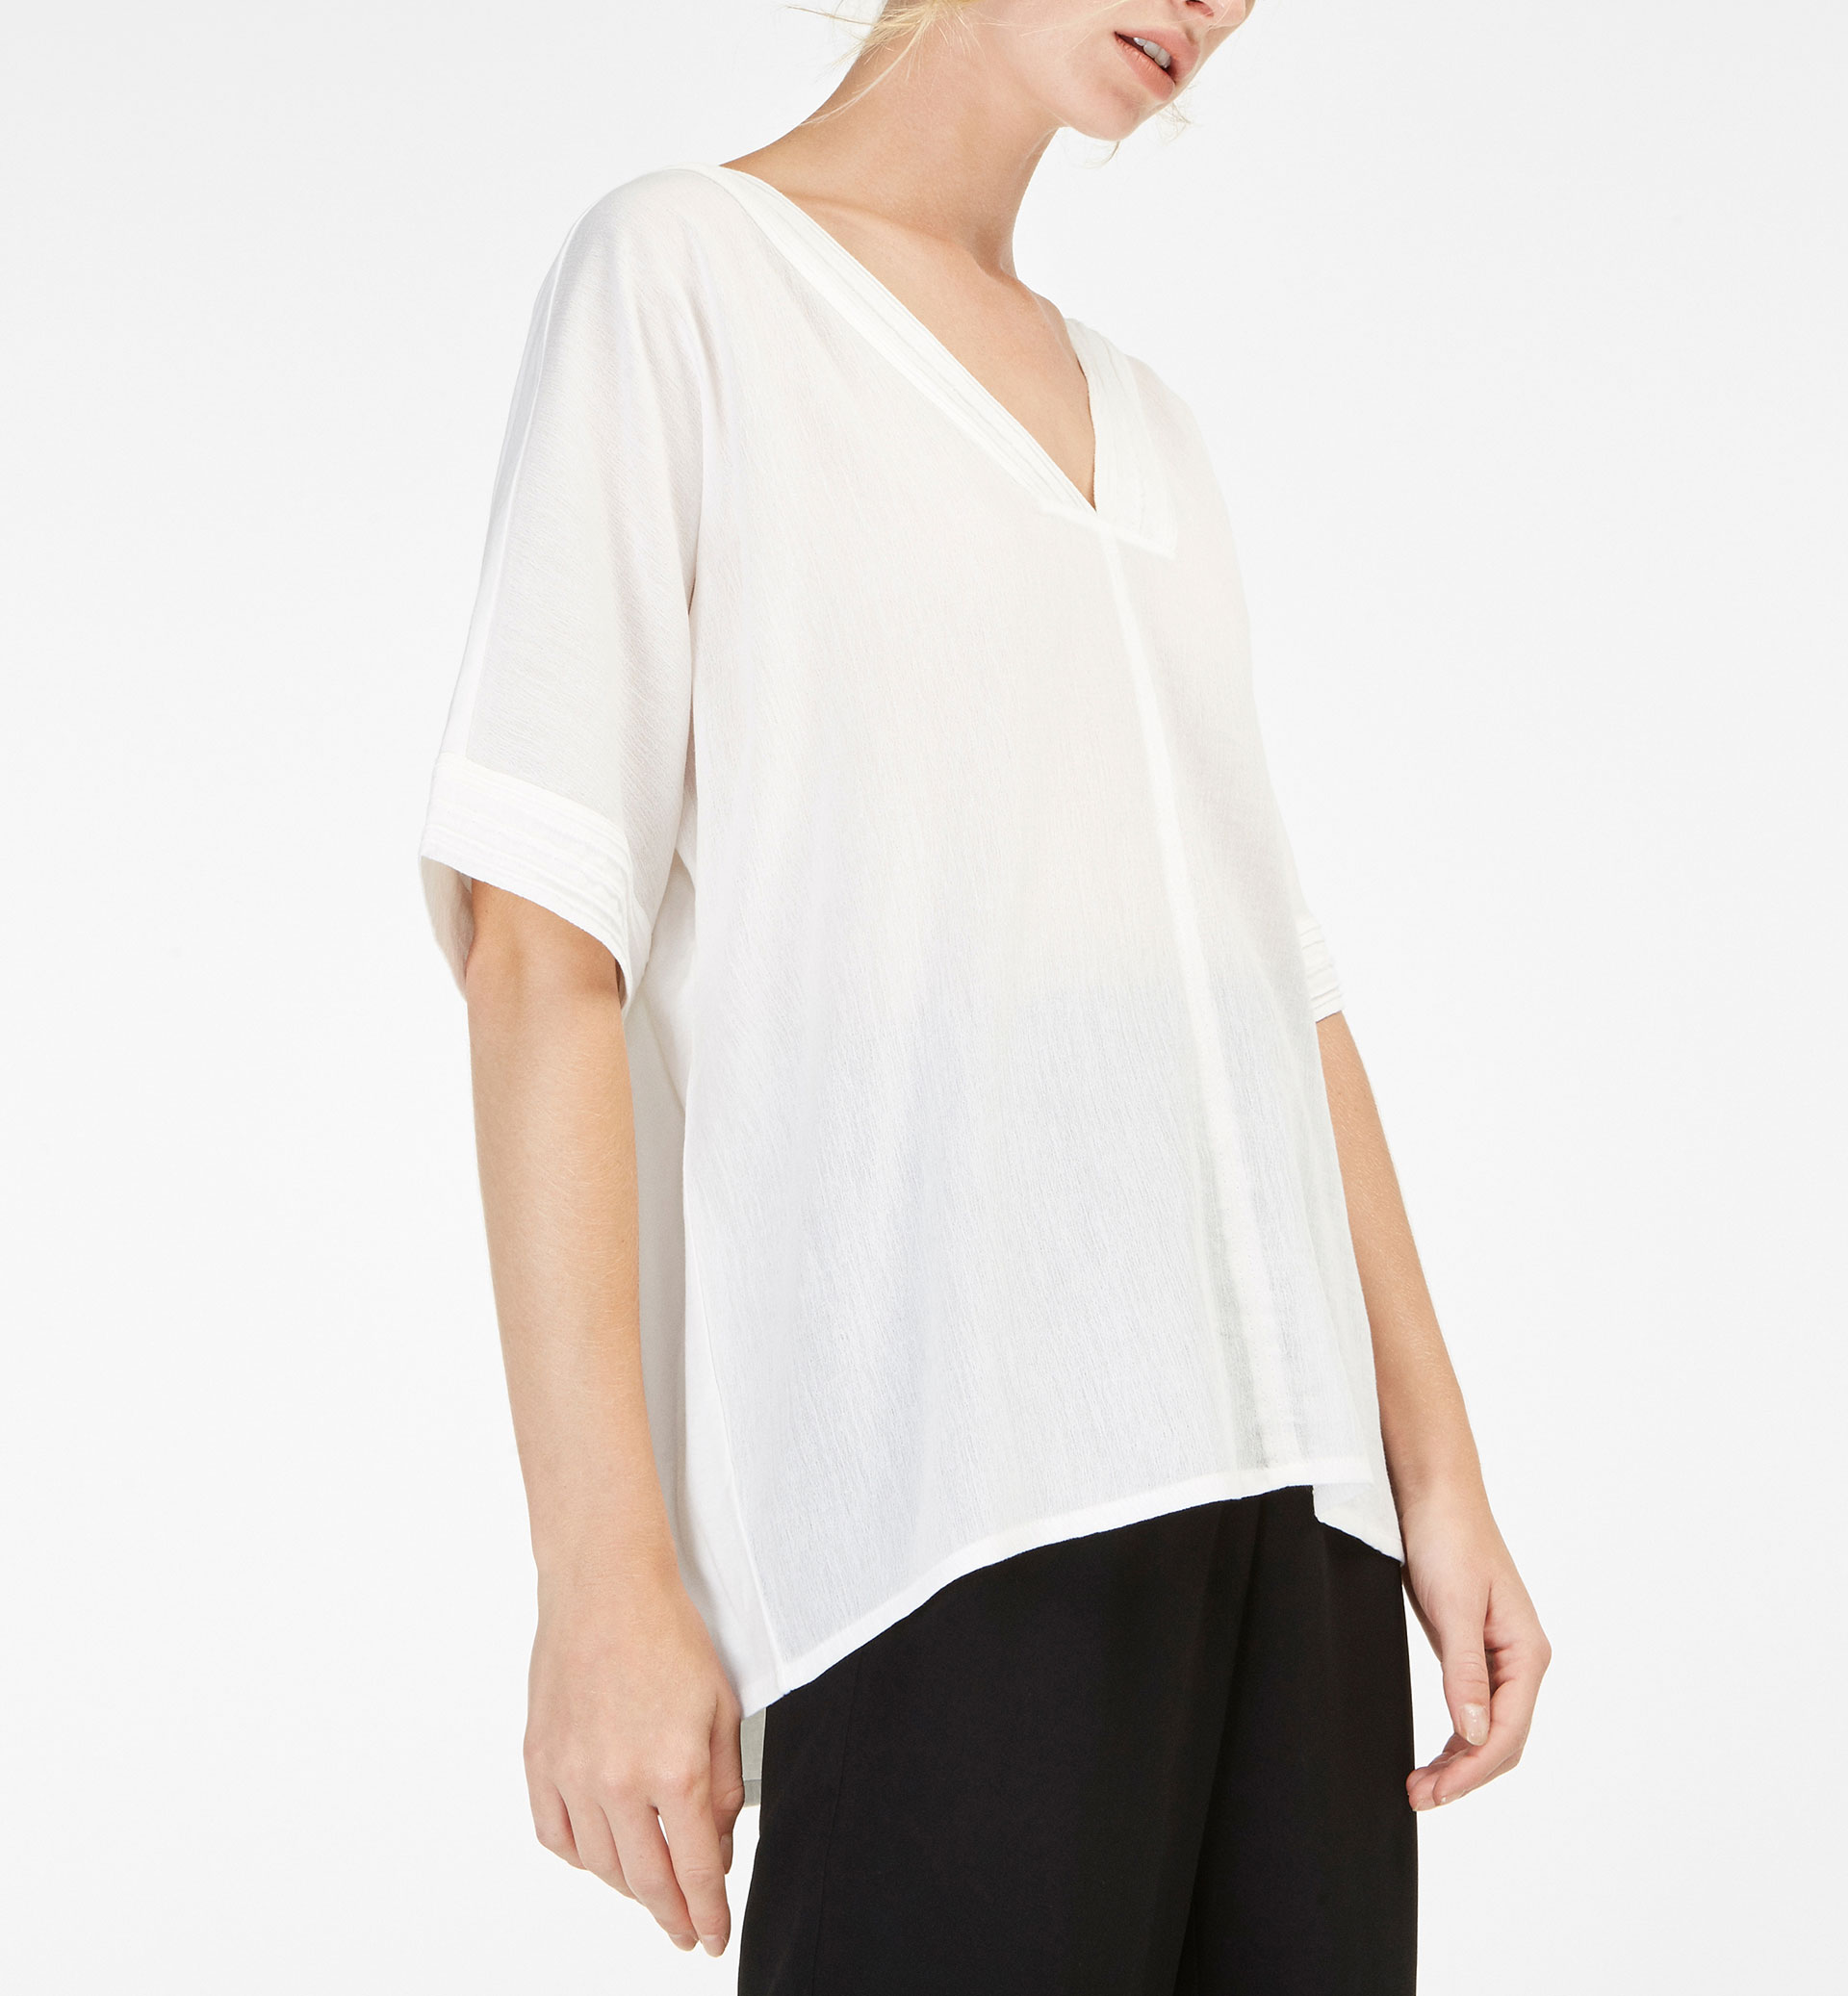 T-SHIRT WITH DETAILS AT NECKLINE AND SLEEVES